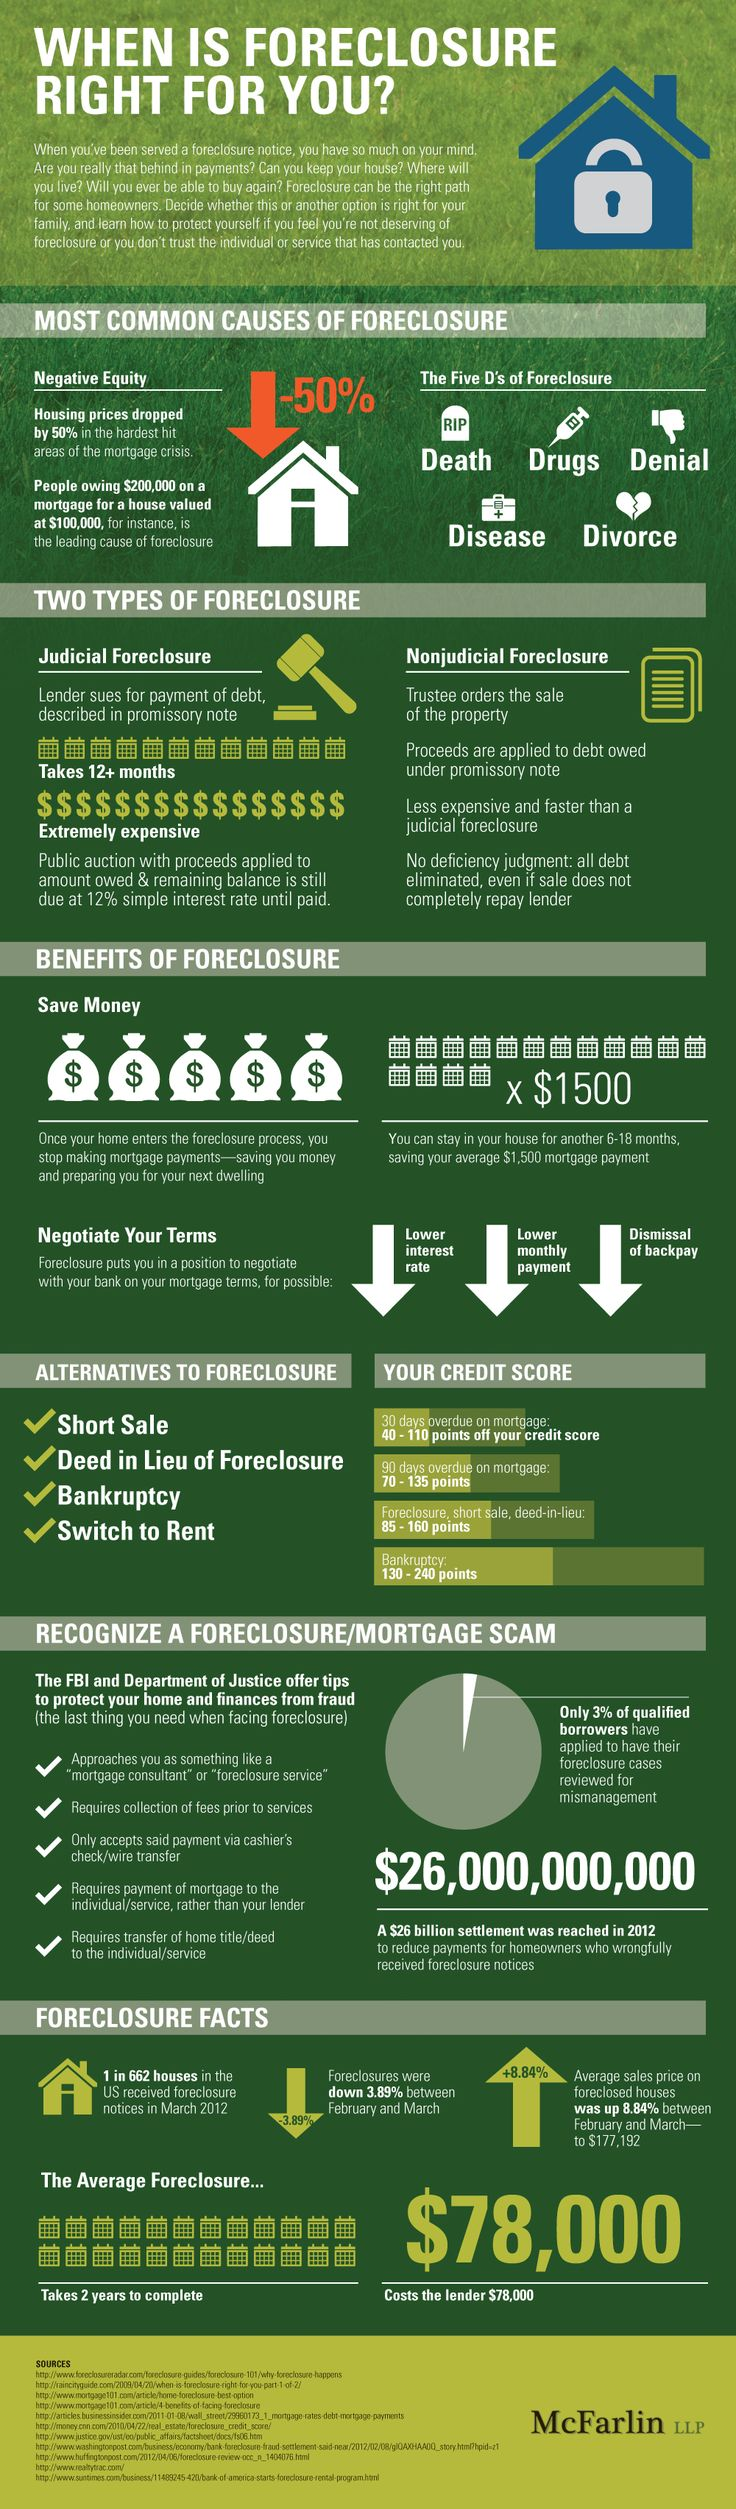 When is foreclosure right for